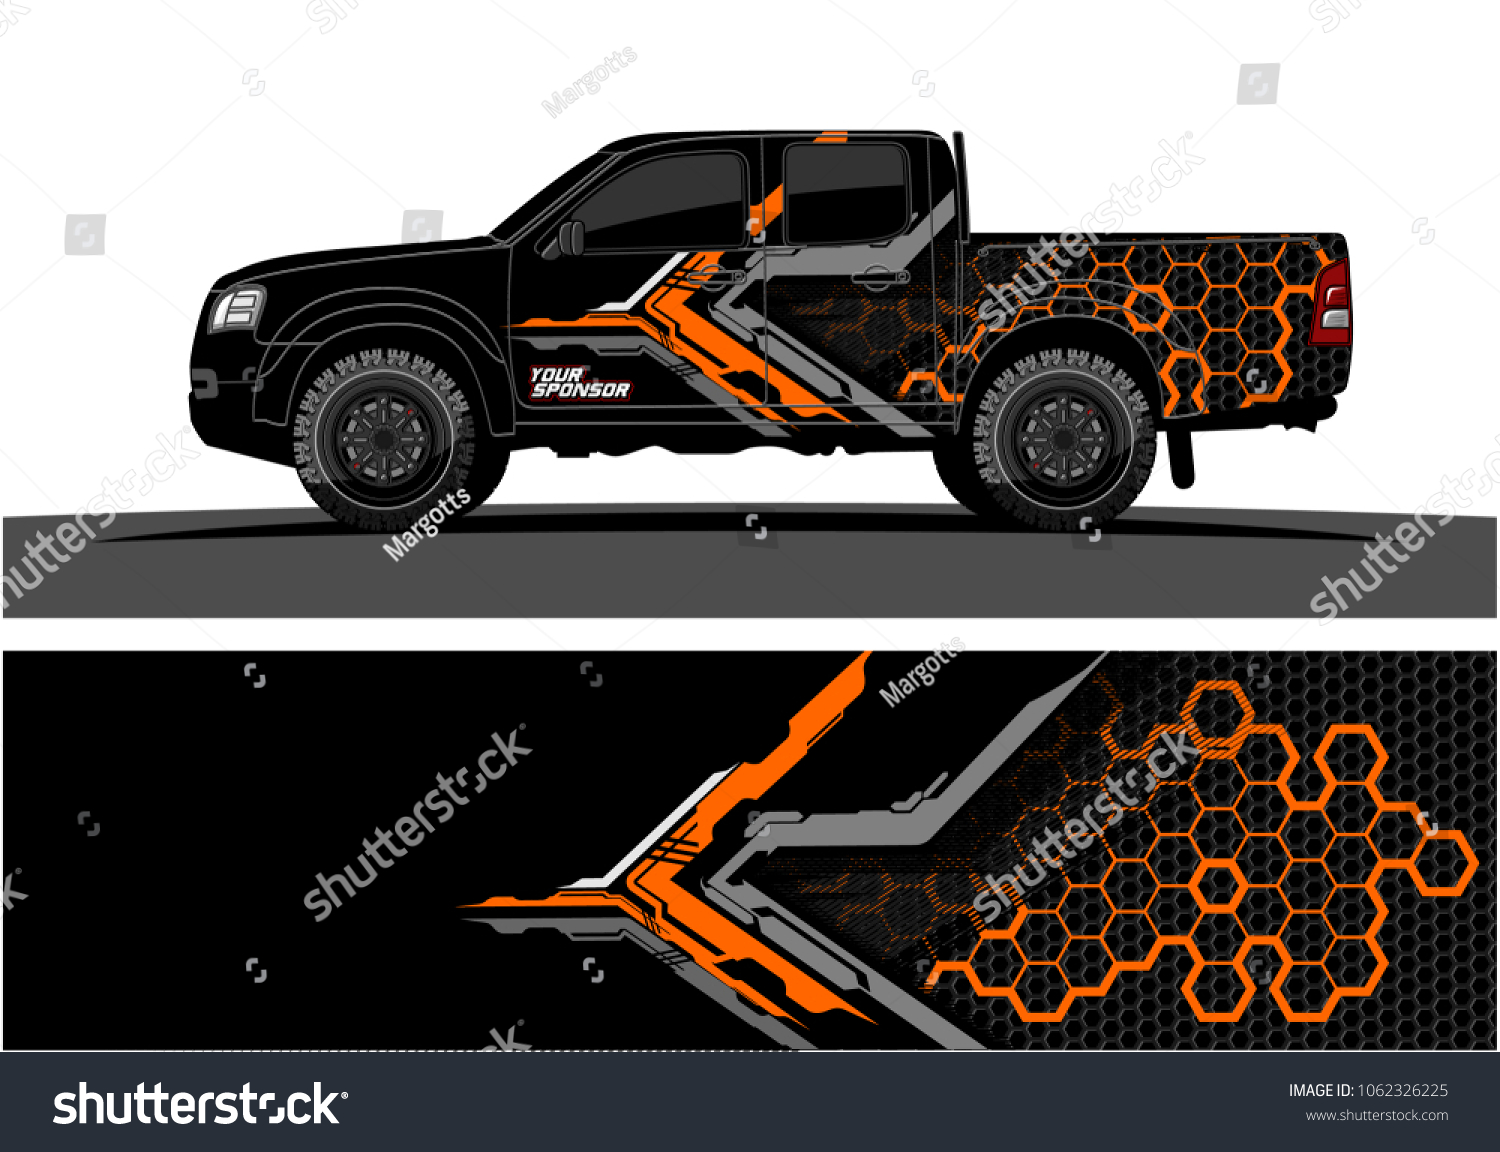 Truck graphic abstract modern lines graphic design for truck and vehicle wrap and branding stickers